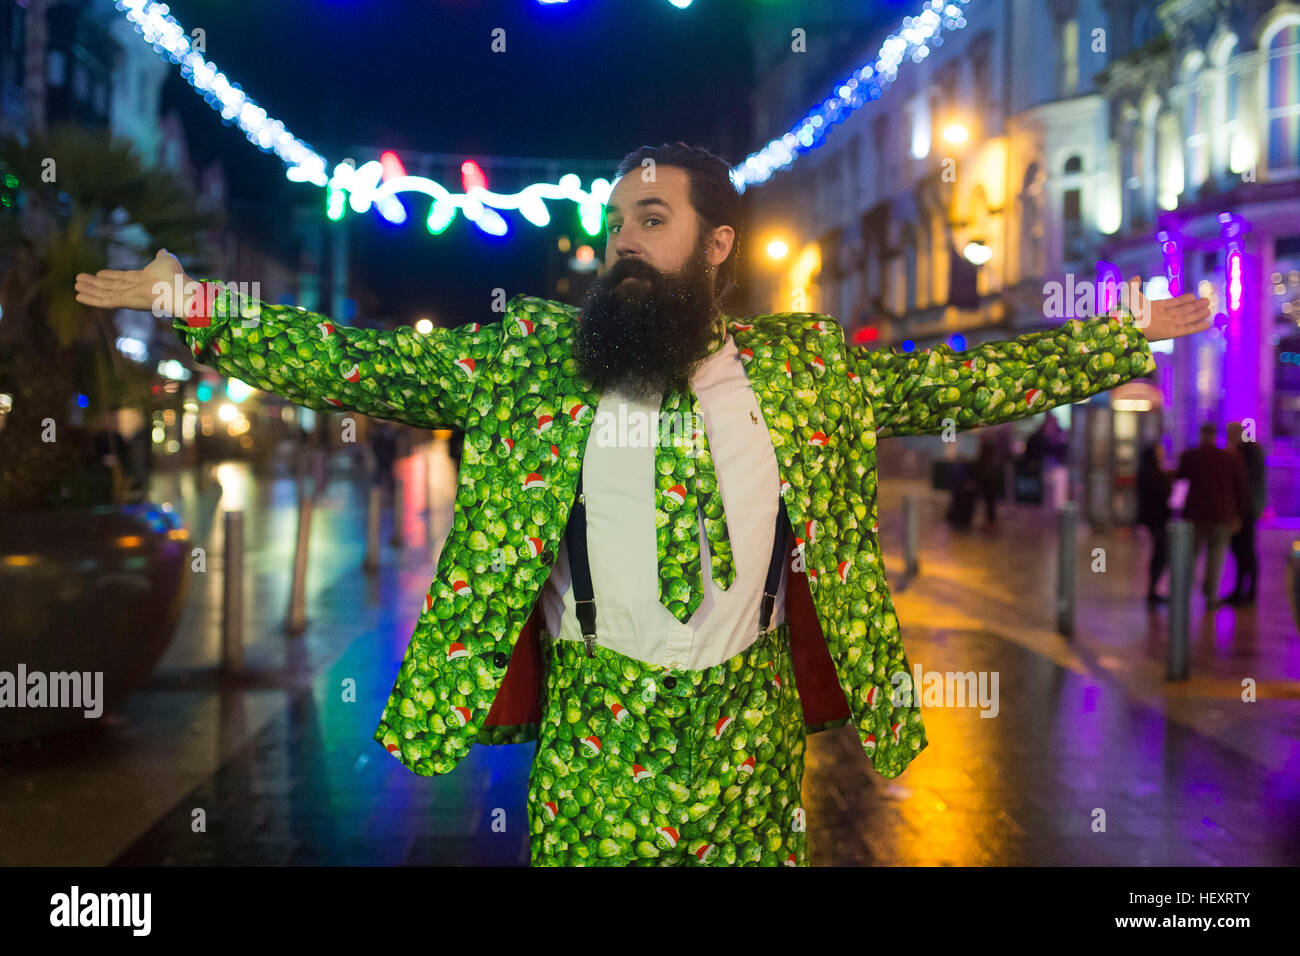 A reveller with a sprout suit on St. Mary's Street during Black Friday in Cardiff, South Wales. - Stock Image